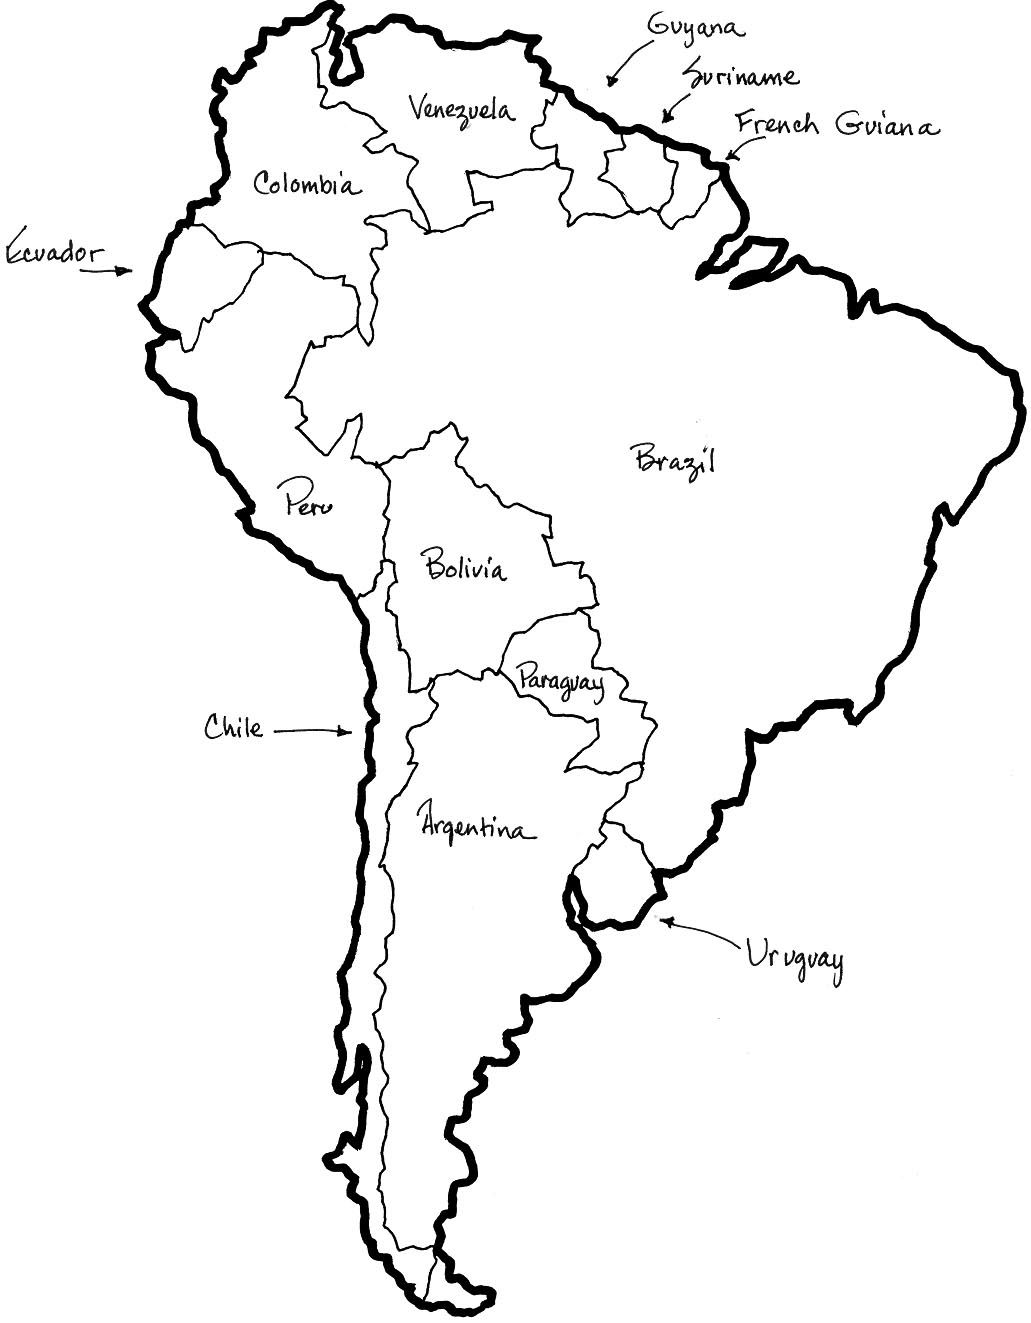 map of central and south america coloring sheet.